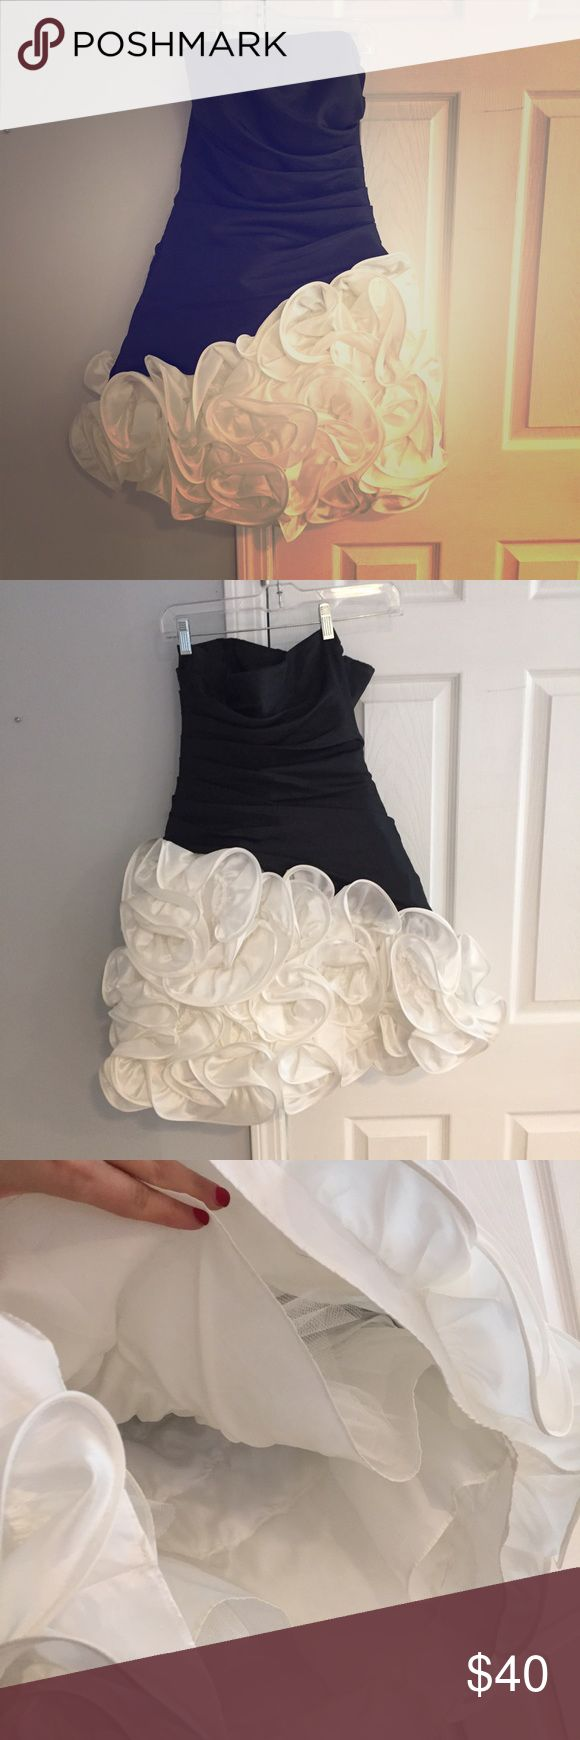 Black-and-white party dress Black-and-white straplessparty dress bottom has the swirly ruffle. Underneath does have crinoline but has a lining so it's not itchy on the legs. Great for prom or other special occasion. Dresses Strapless